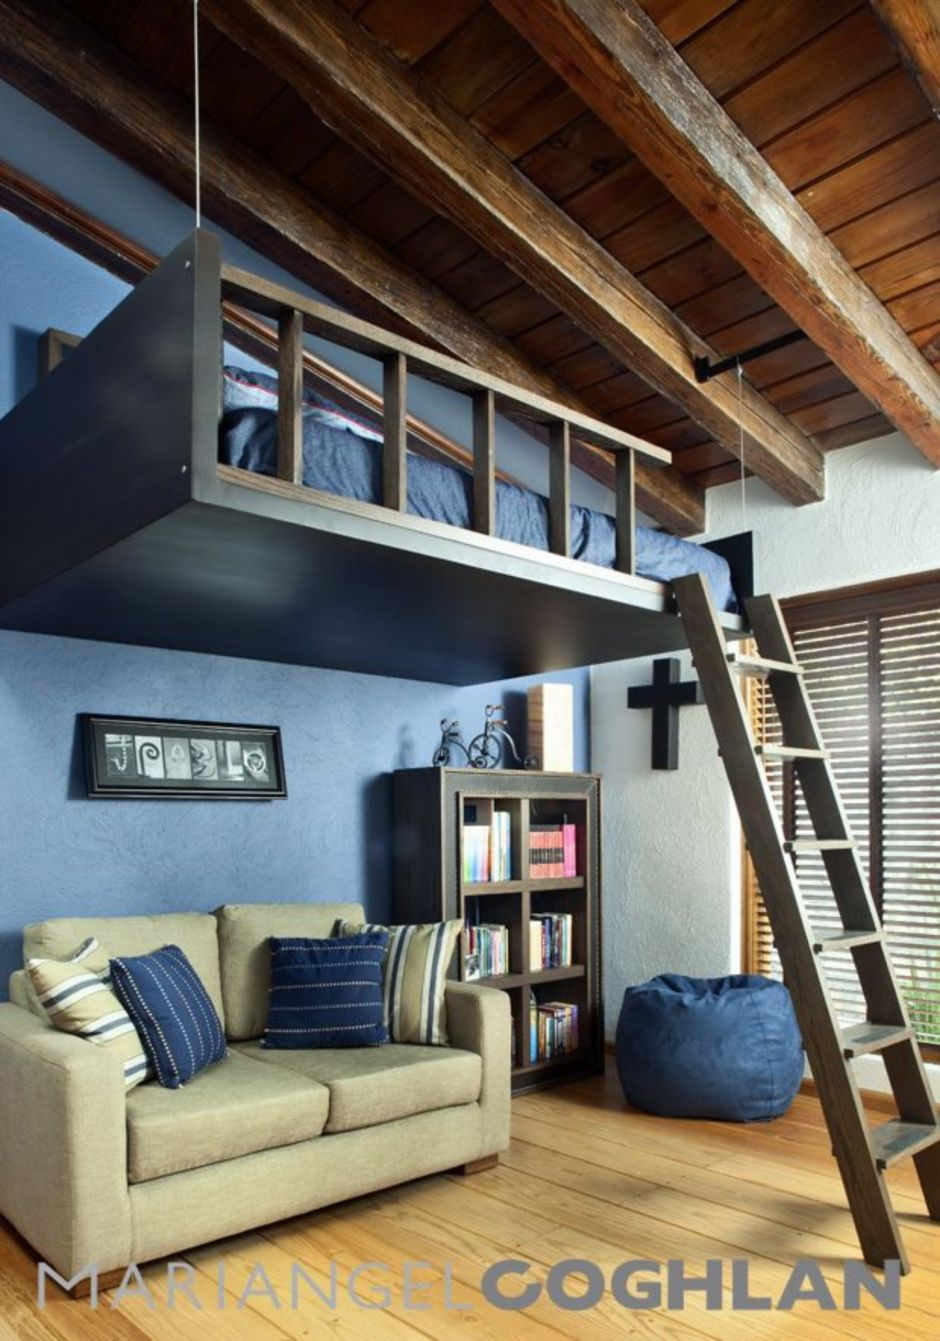 Awesome Cool Loft Bed Design Ideas And Inspirations 38 Hoommy Com